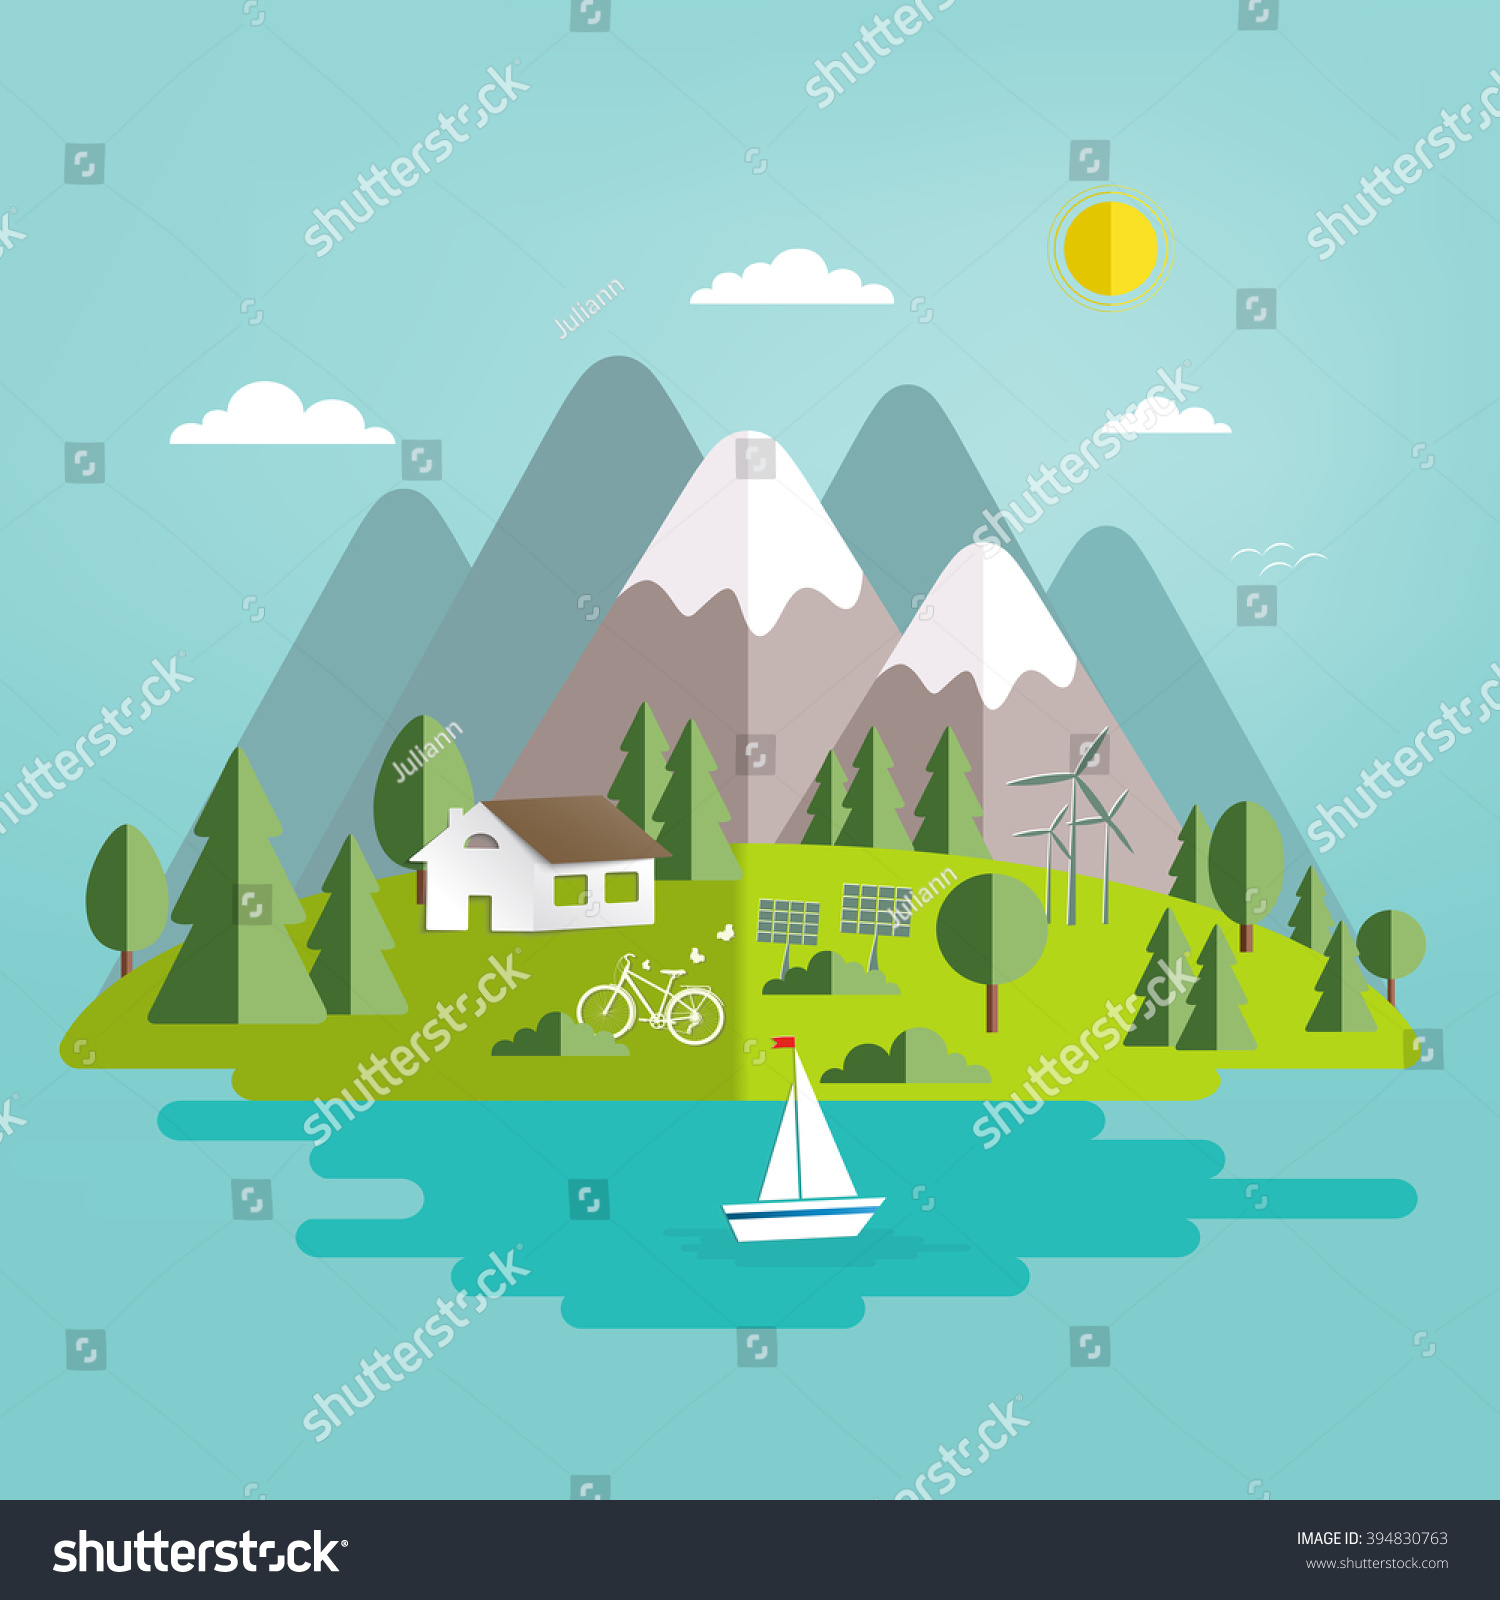 Environmental Concept Earthfriendly Landscapes: Summer Landscape Isolated Nature Landscape Mountains Stock